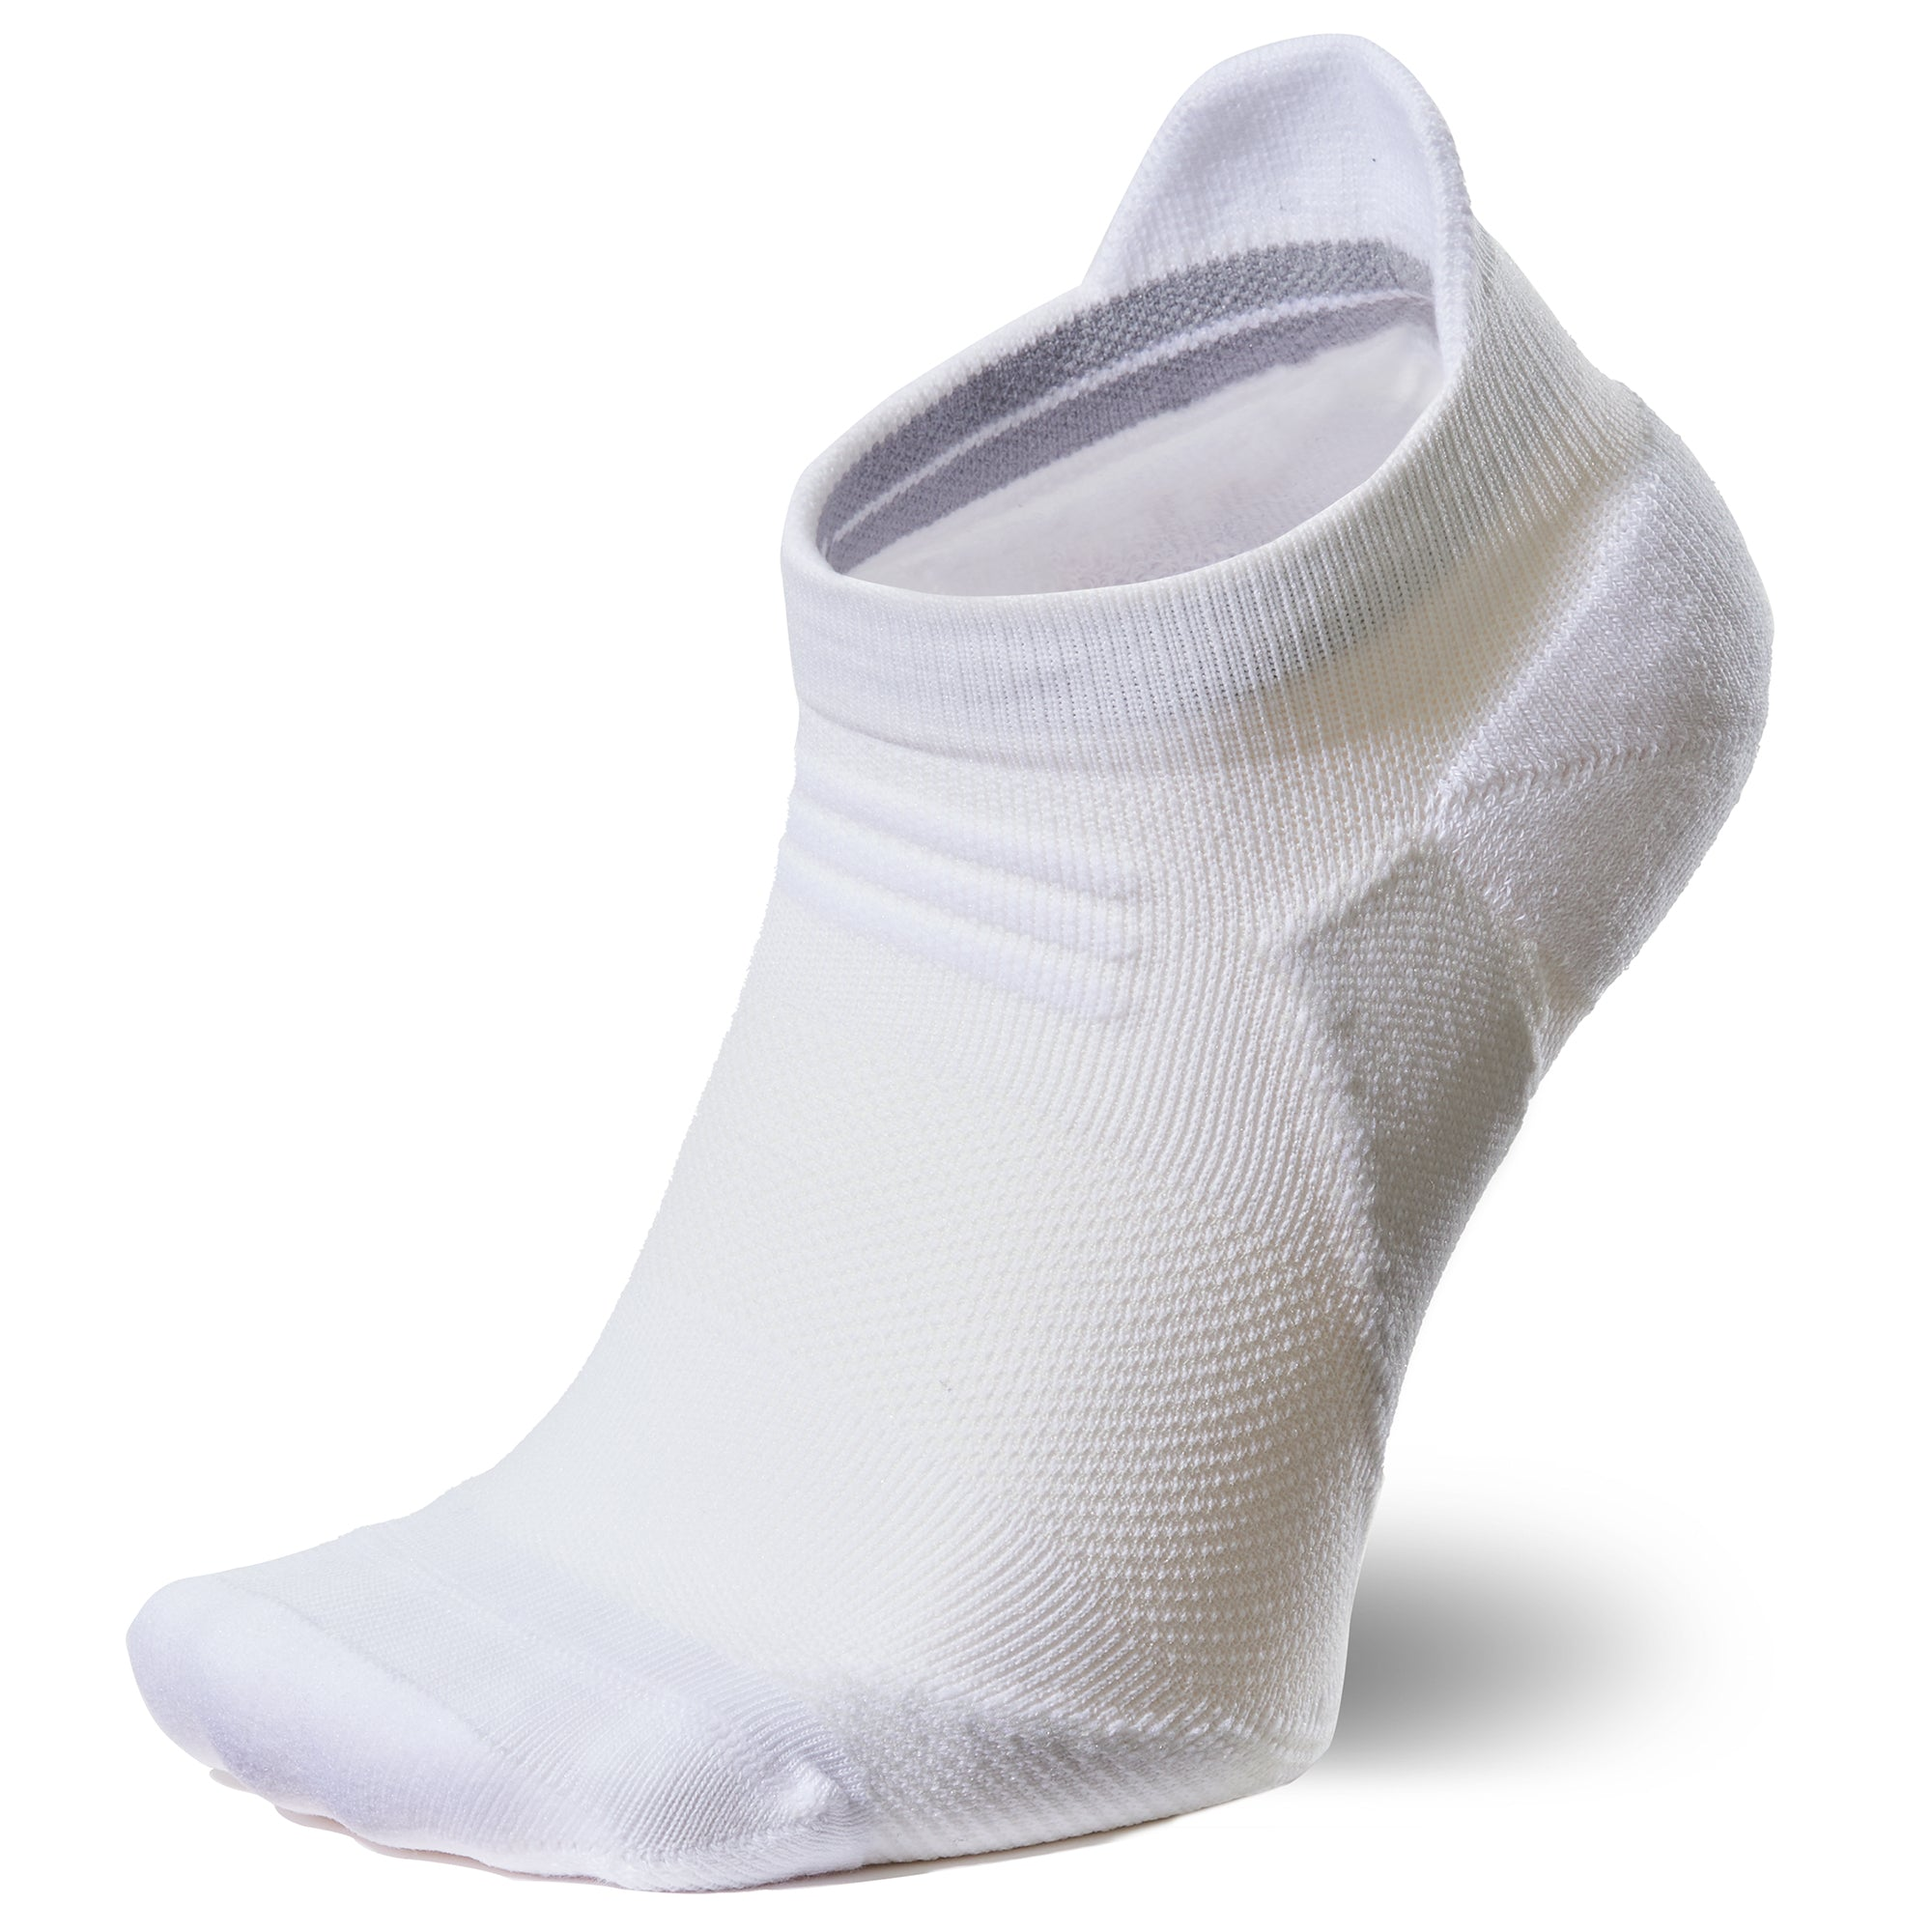 C3fit Arch Support Short Socks